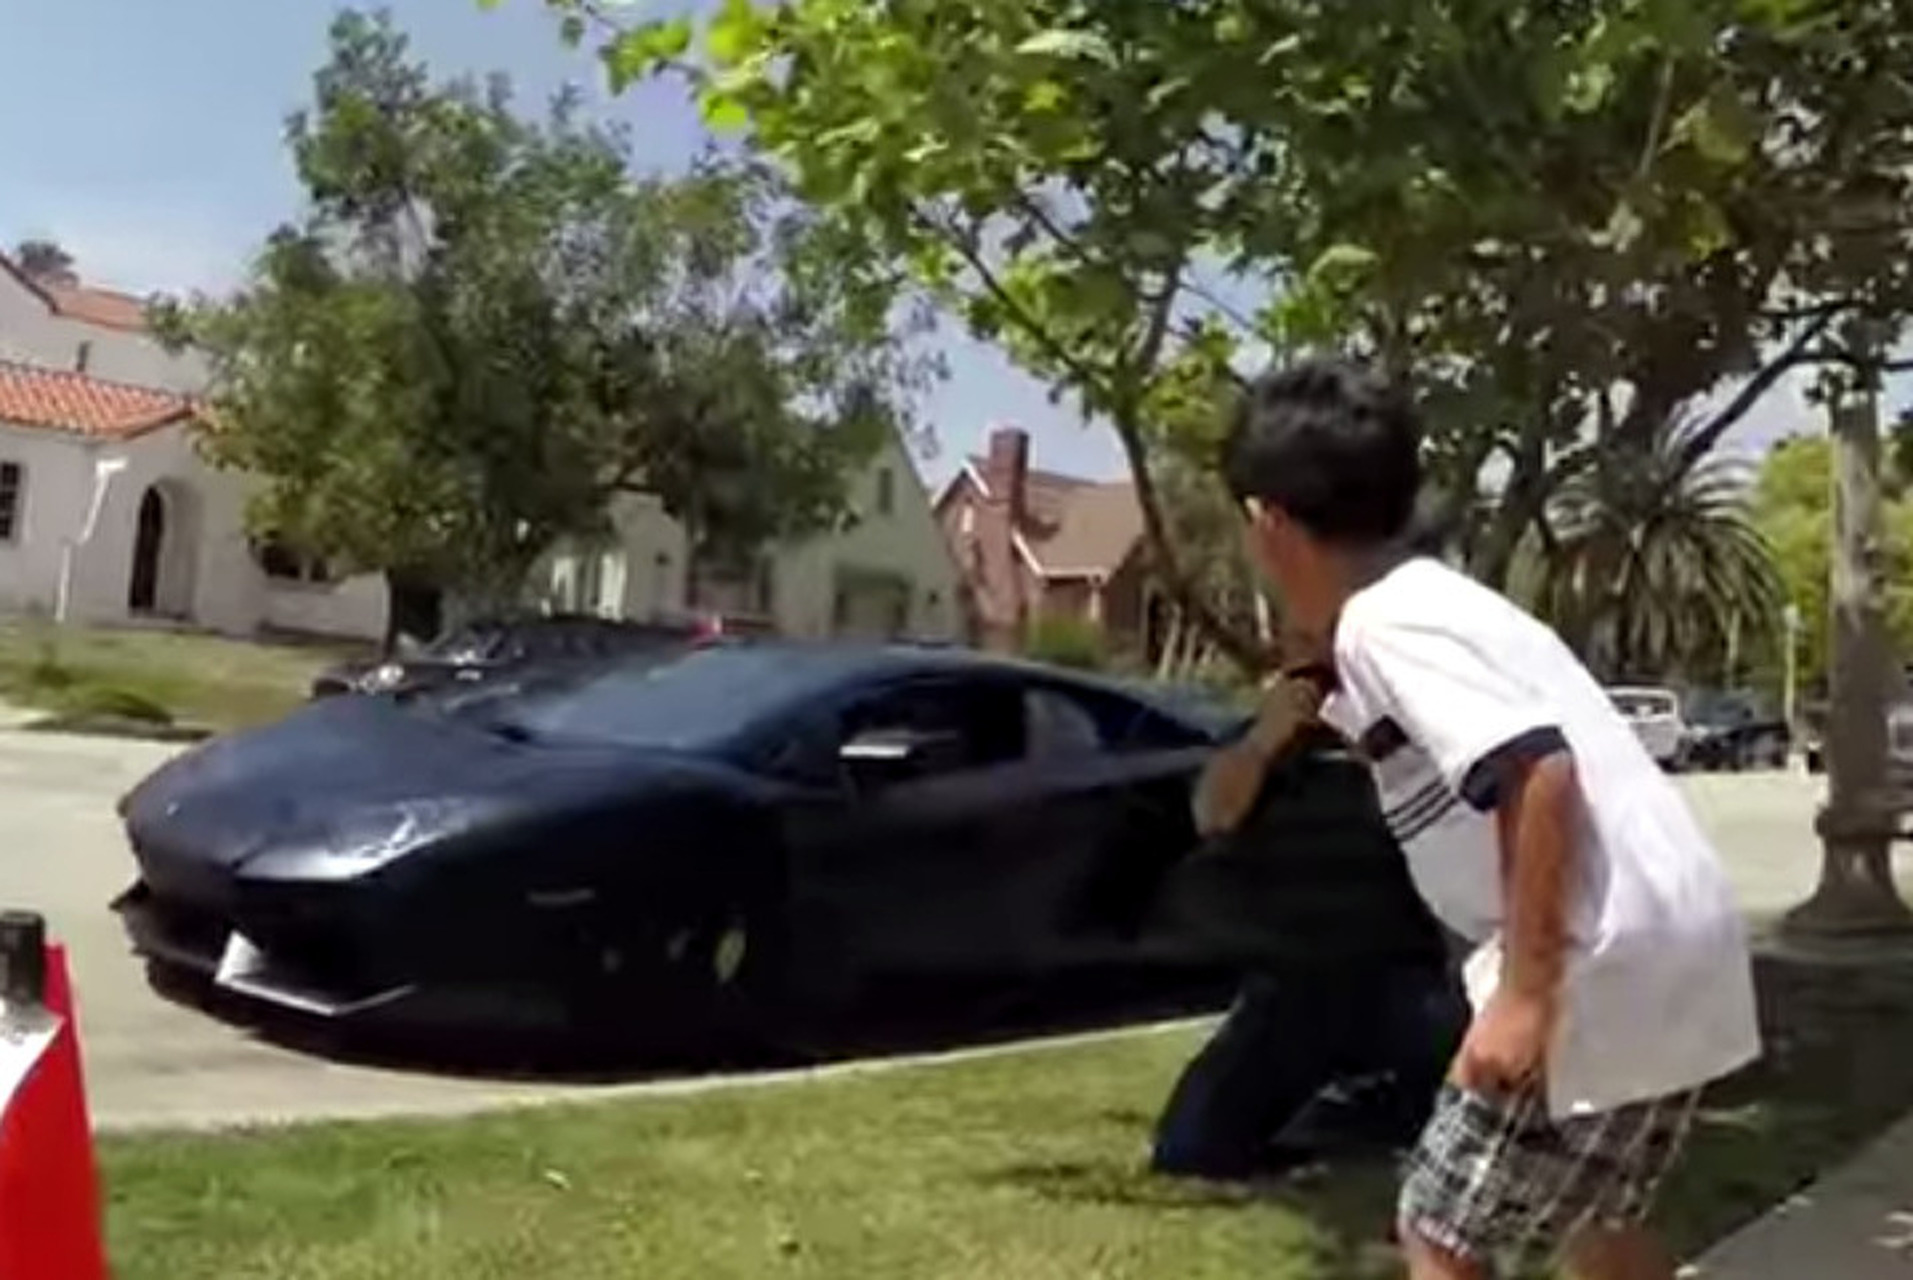 Lamborghini Dealership Crashes 7-year-old Birthday Party [video]